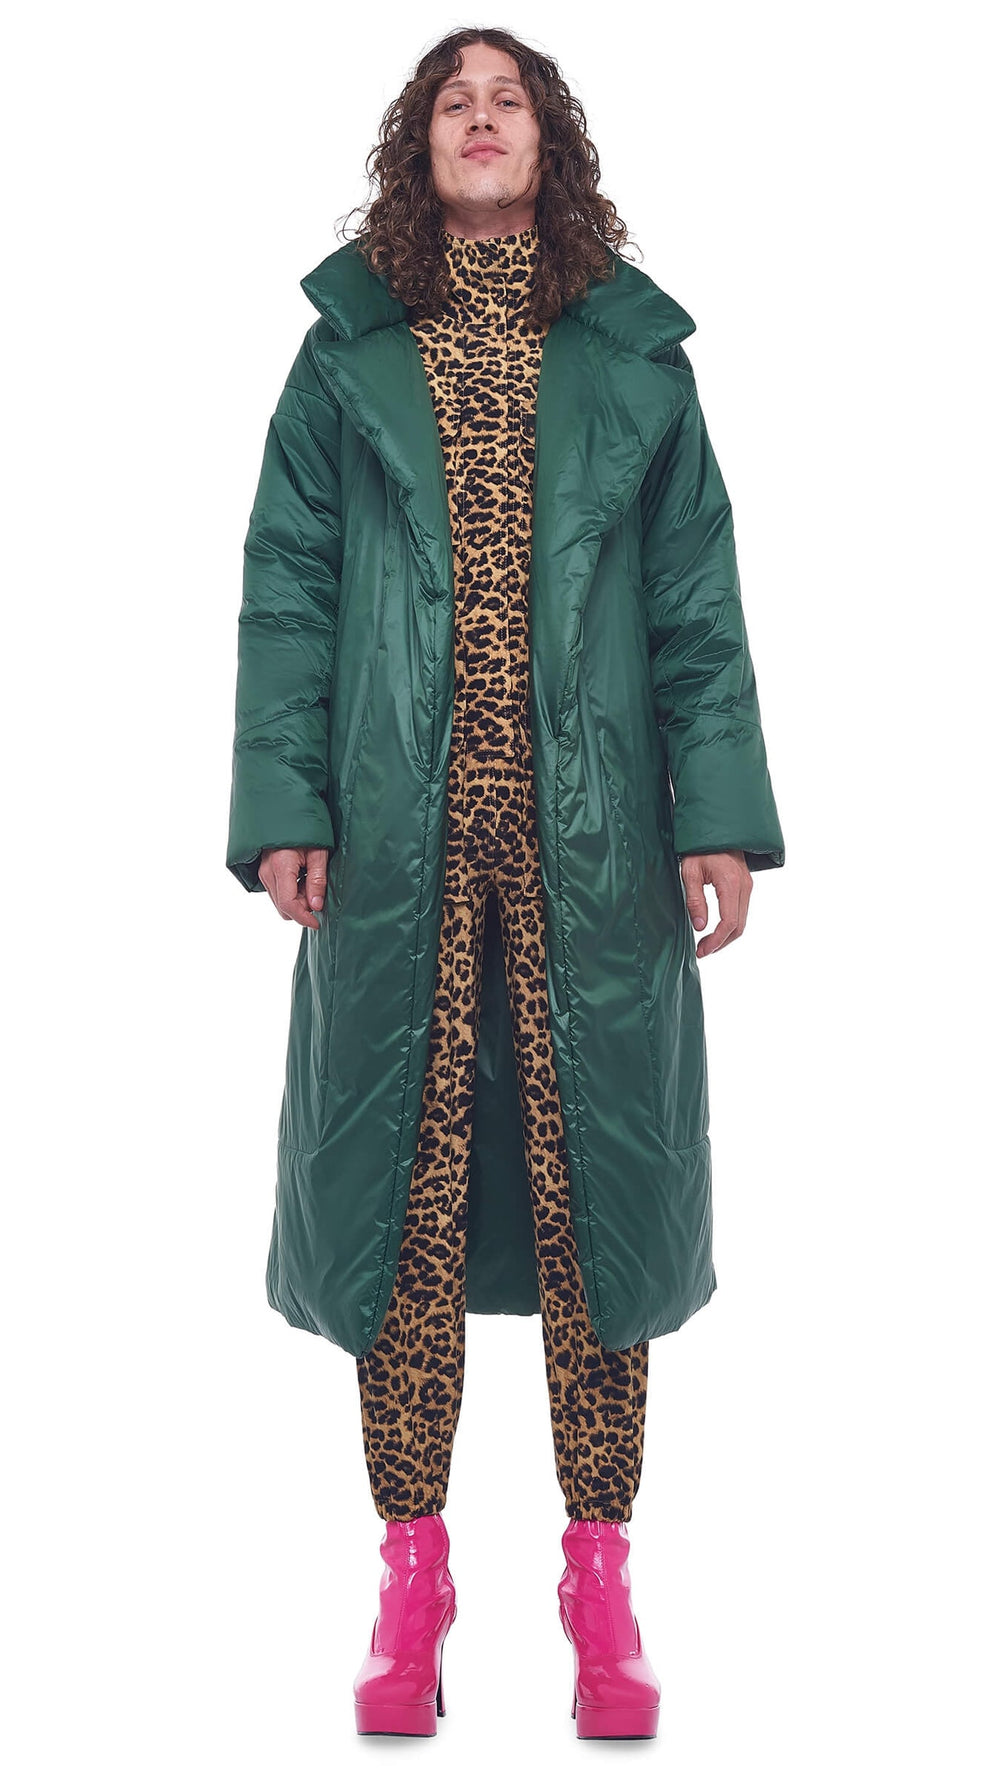 CLASSIC SLEEPING BAG COAT LONG